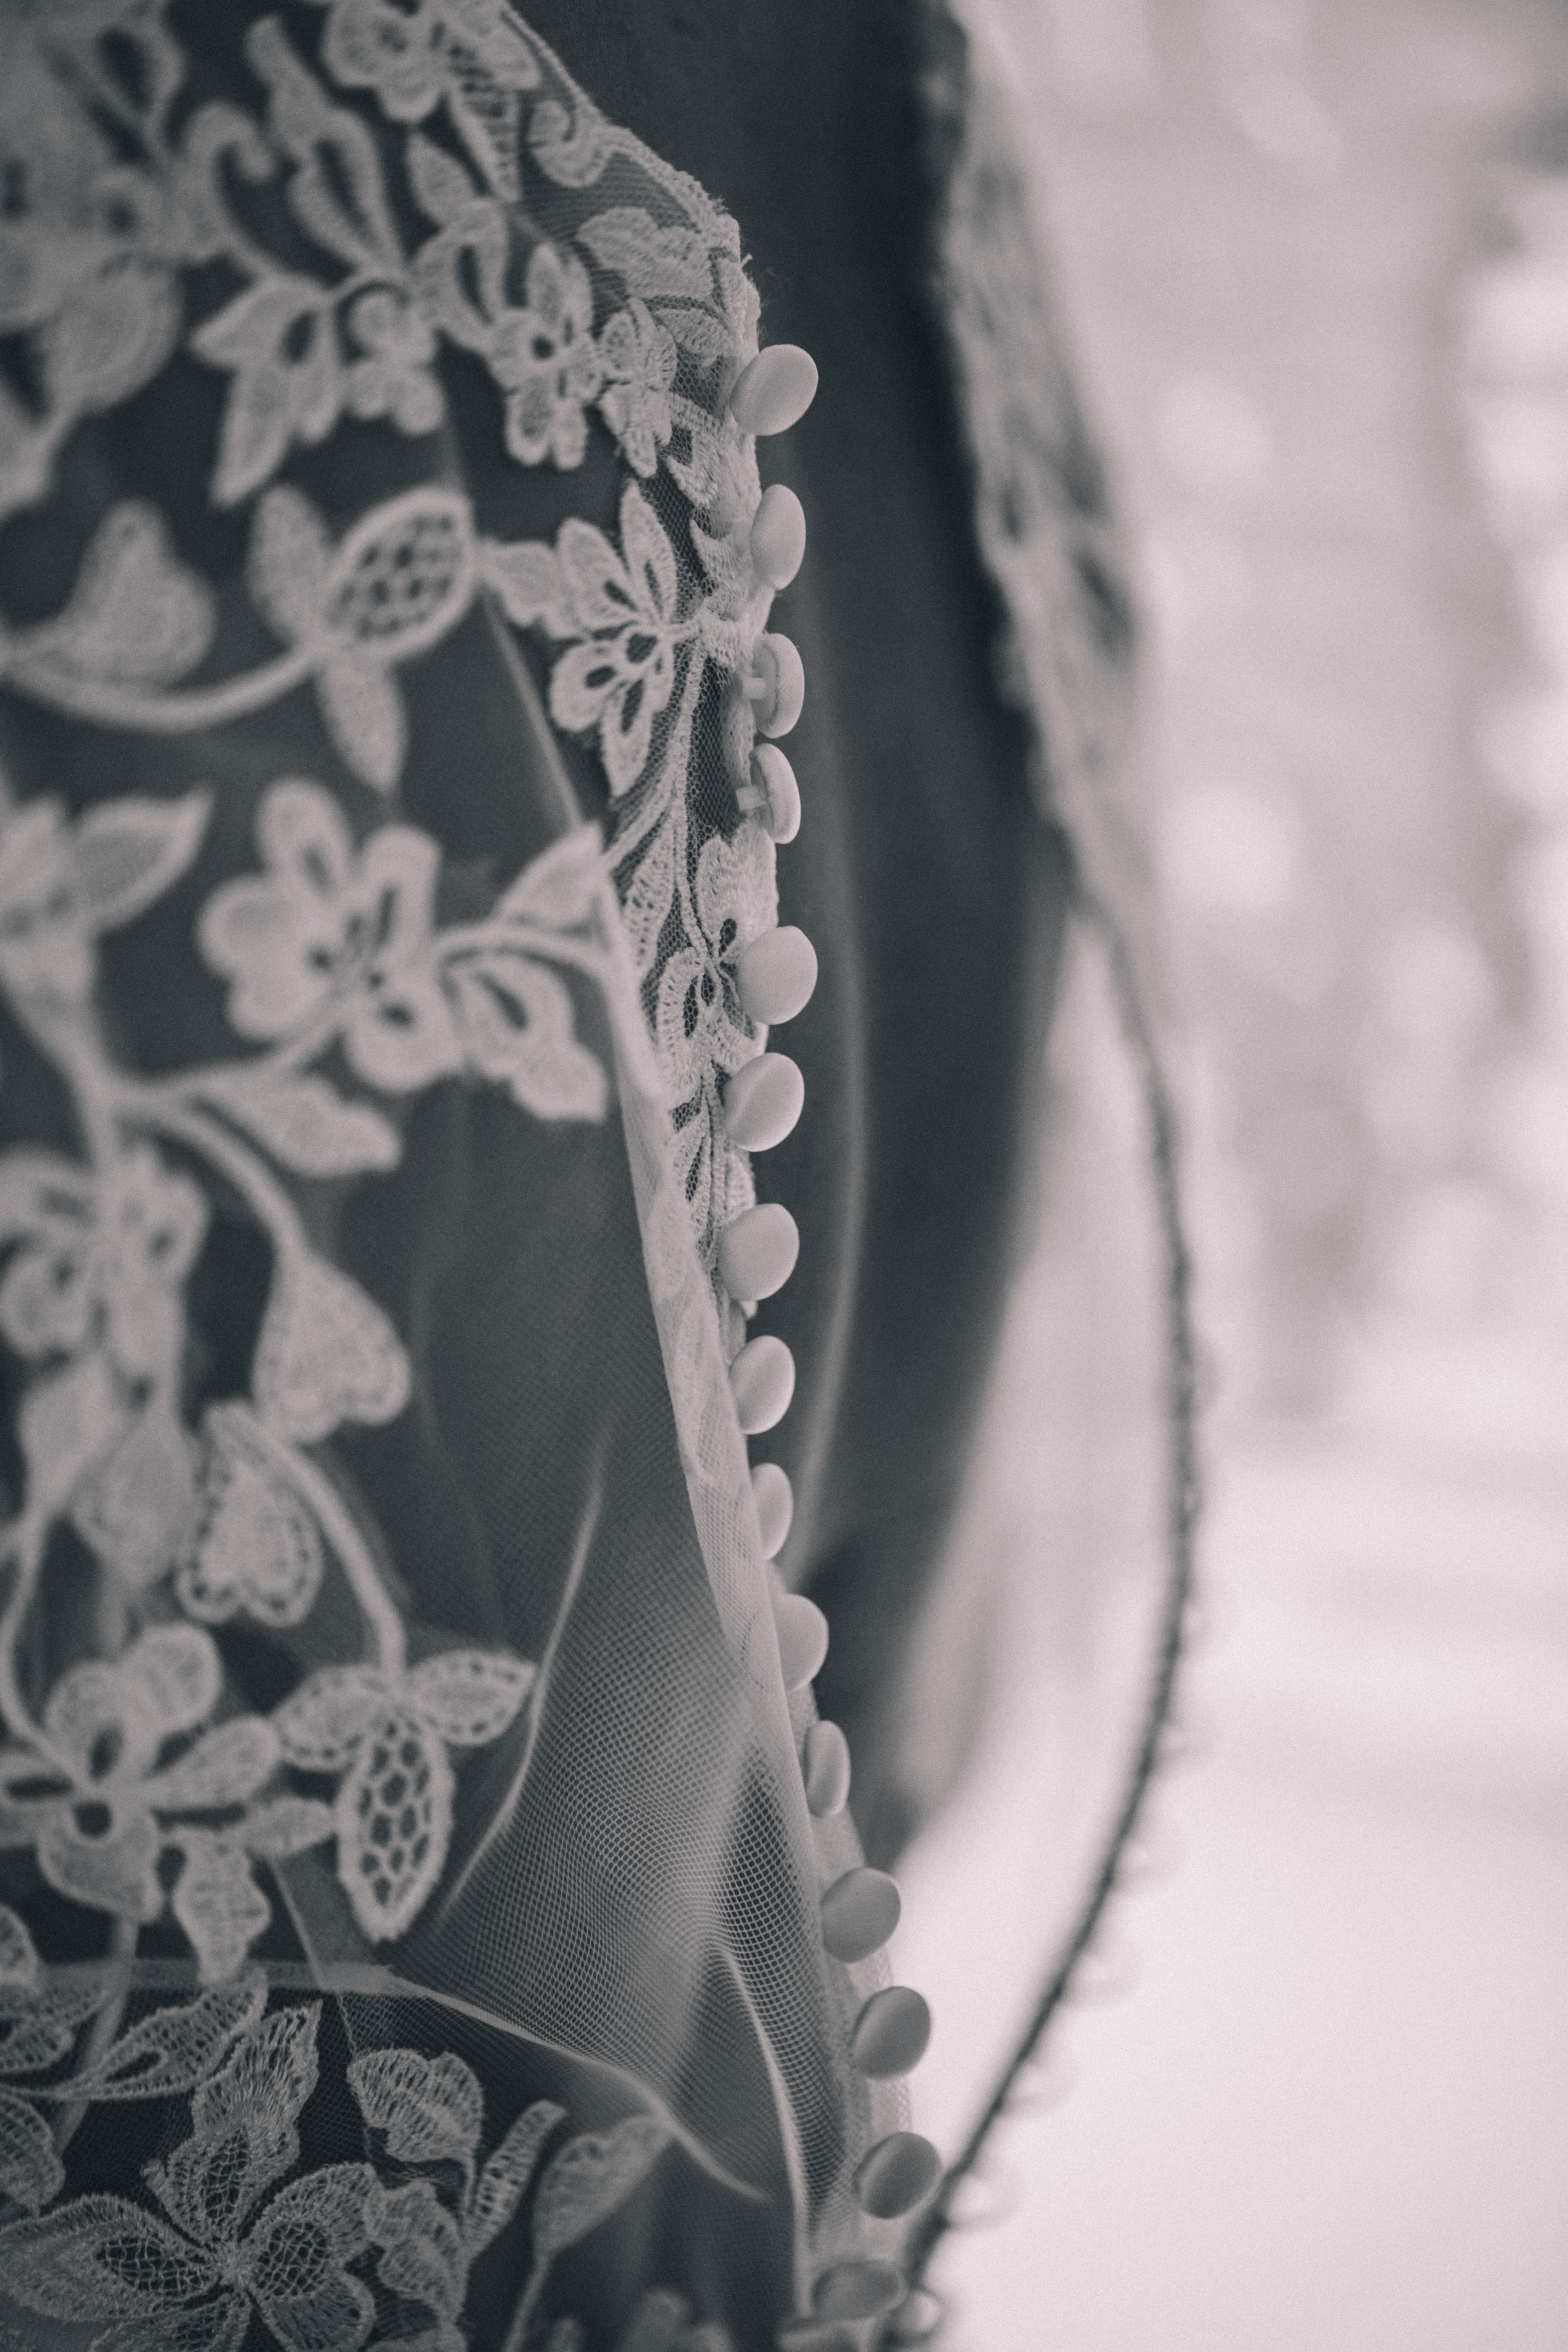 Buttons on the back of a lace wedding dress before interracial wedding in Toronto